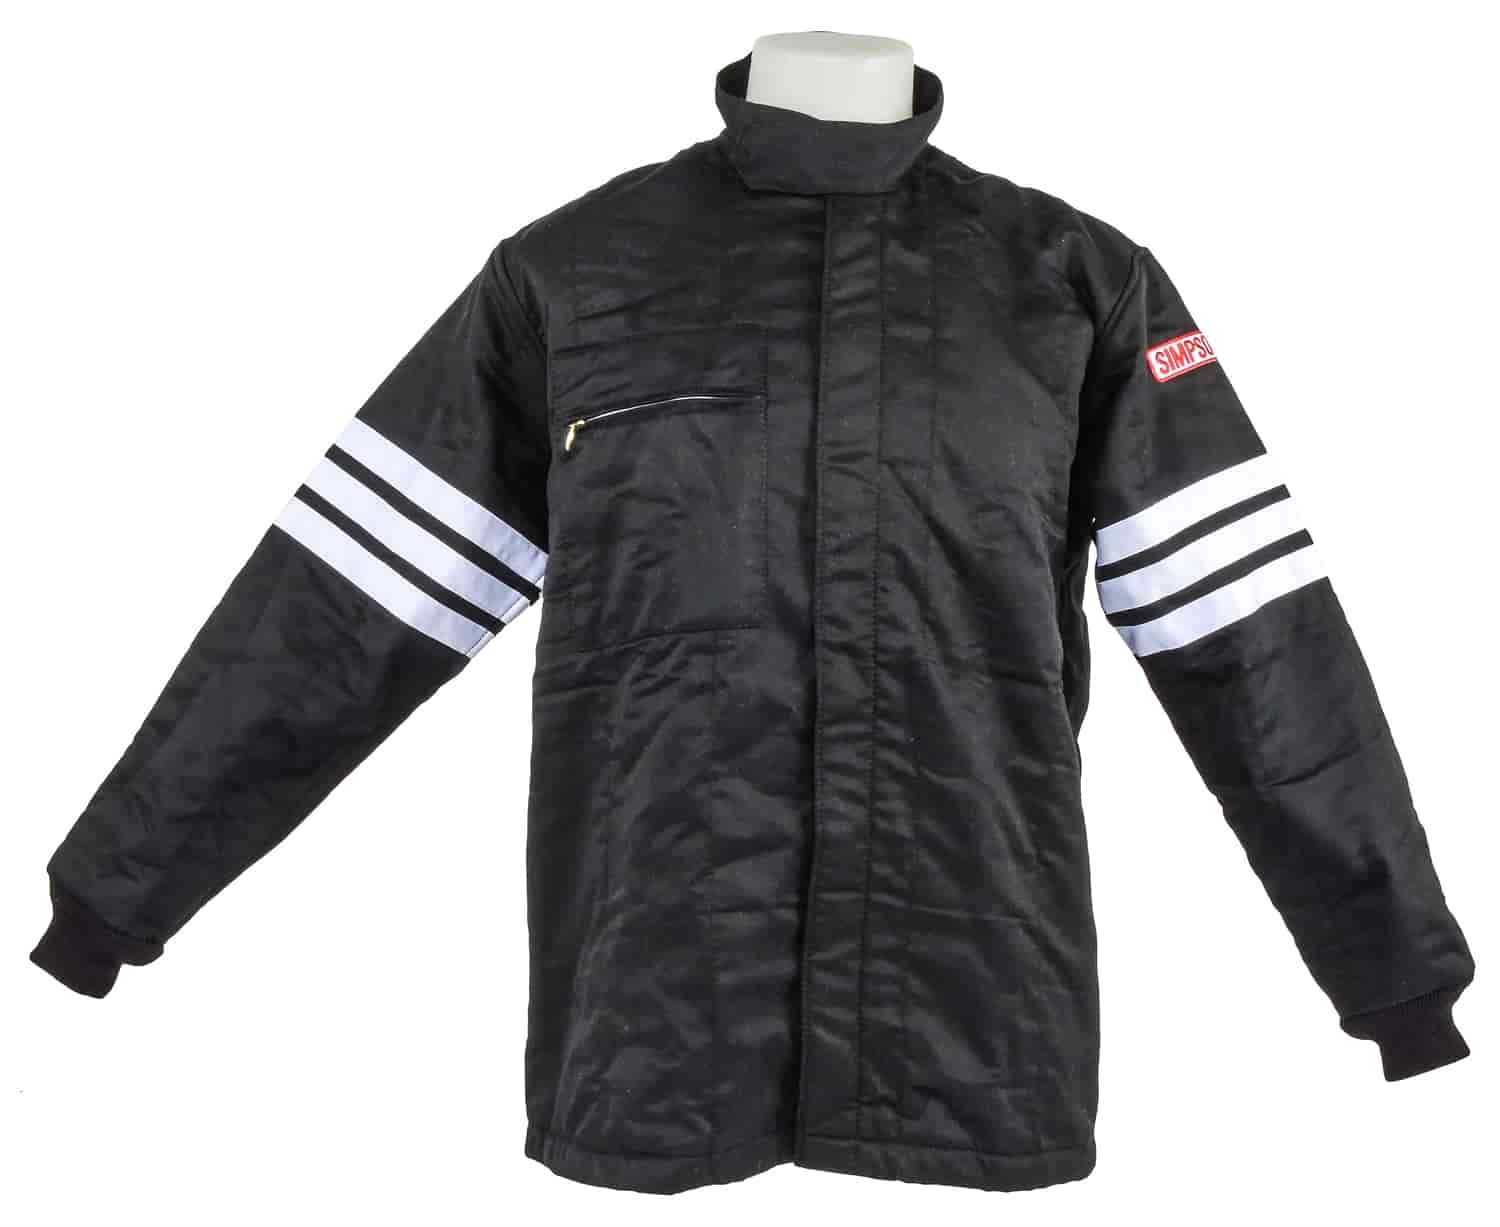 Simpson 0302512 - Simpson Classic 3-Stripe SFI-1 Driving Jackets, Pants and Suits